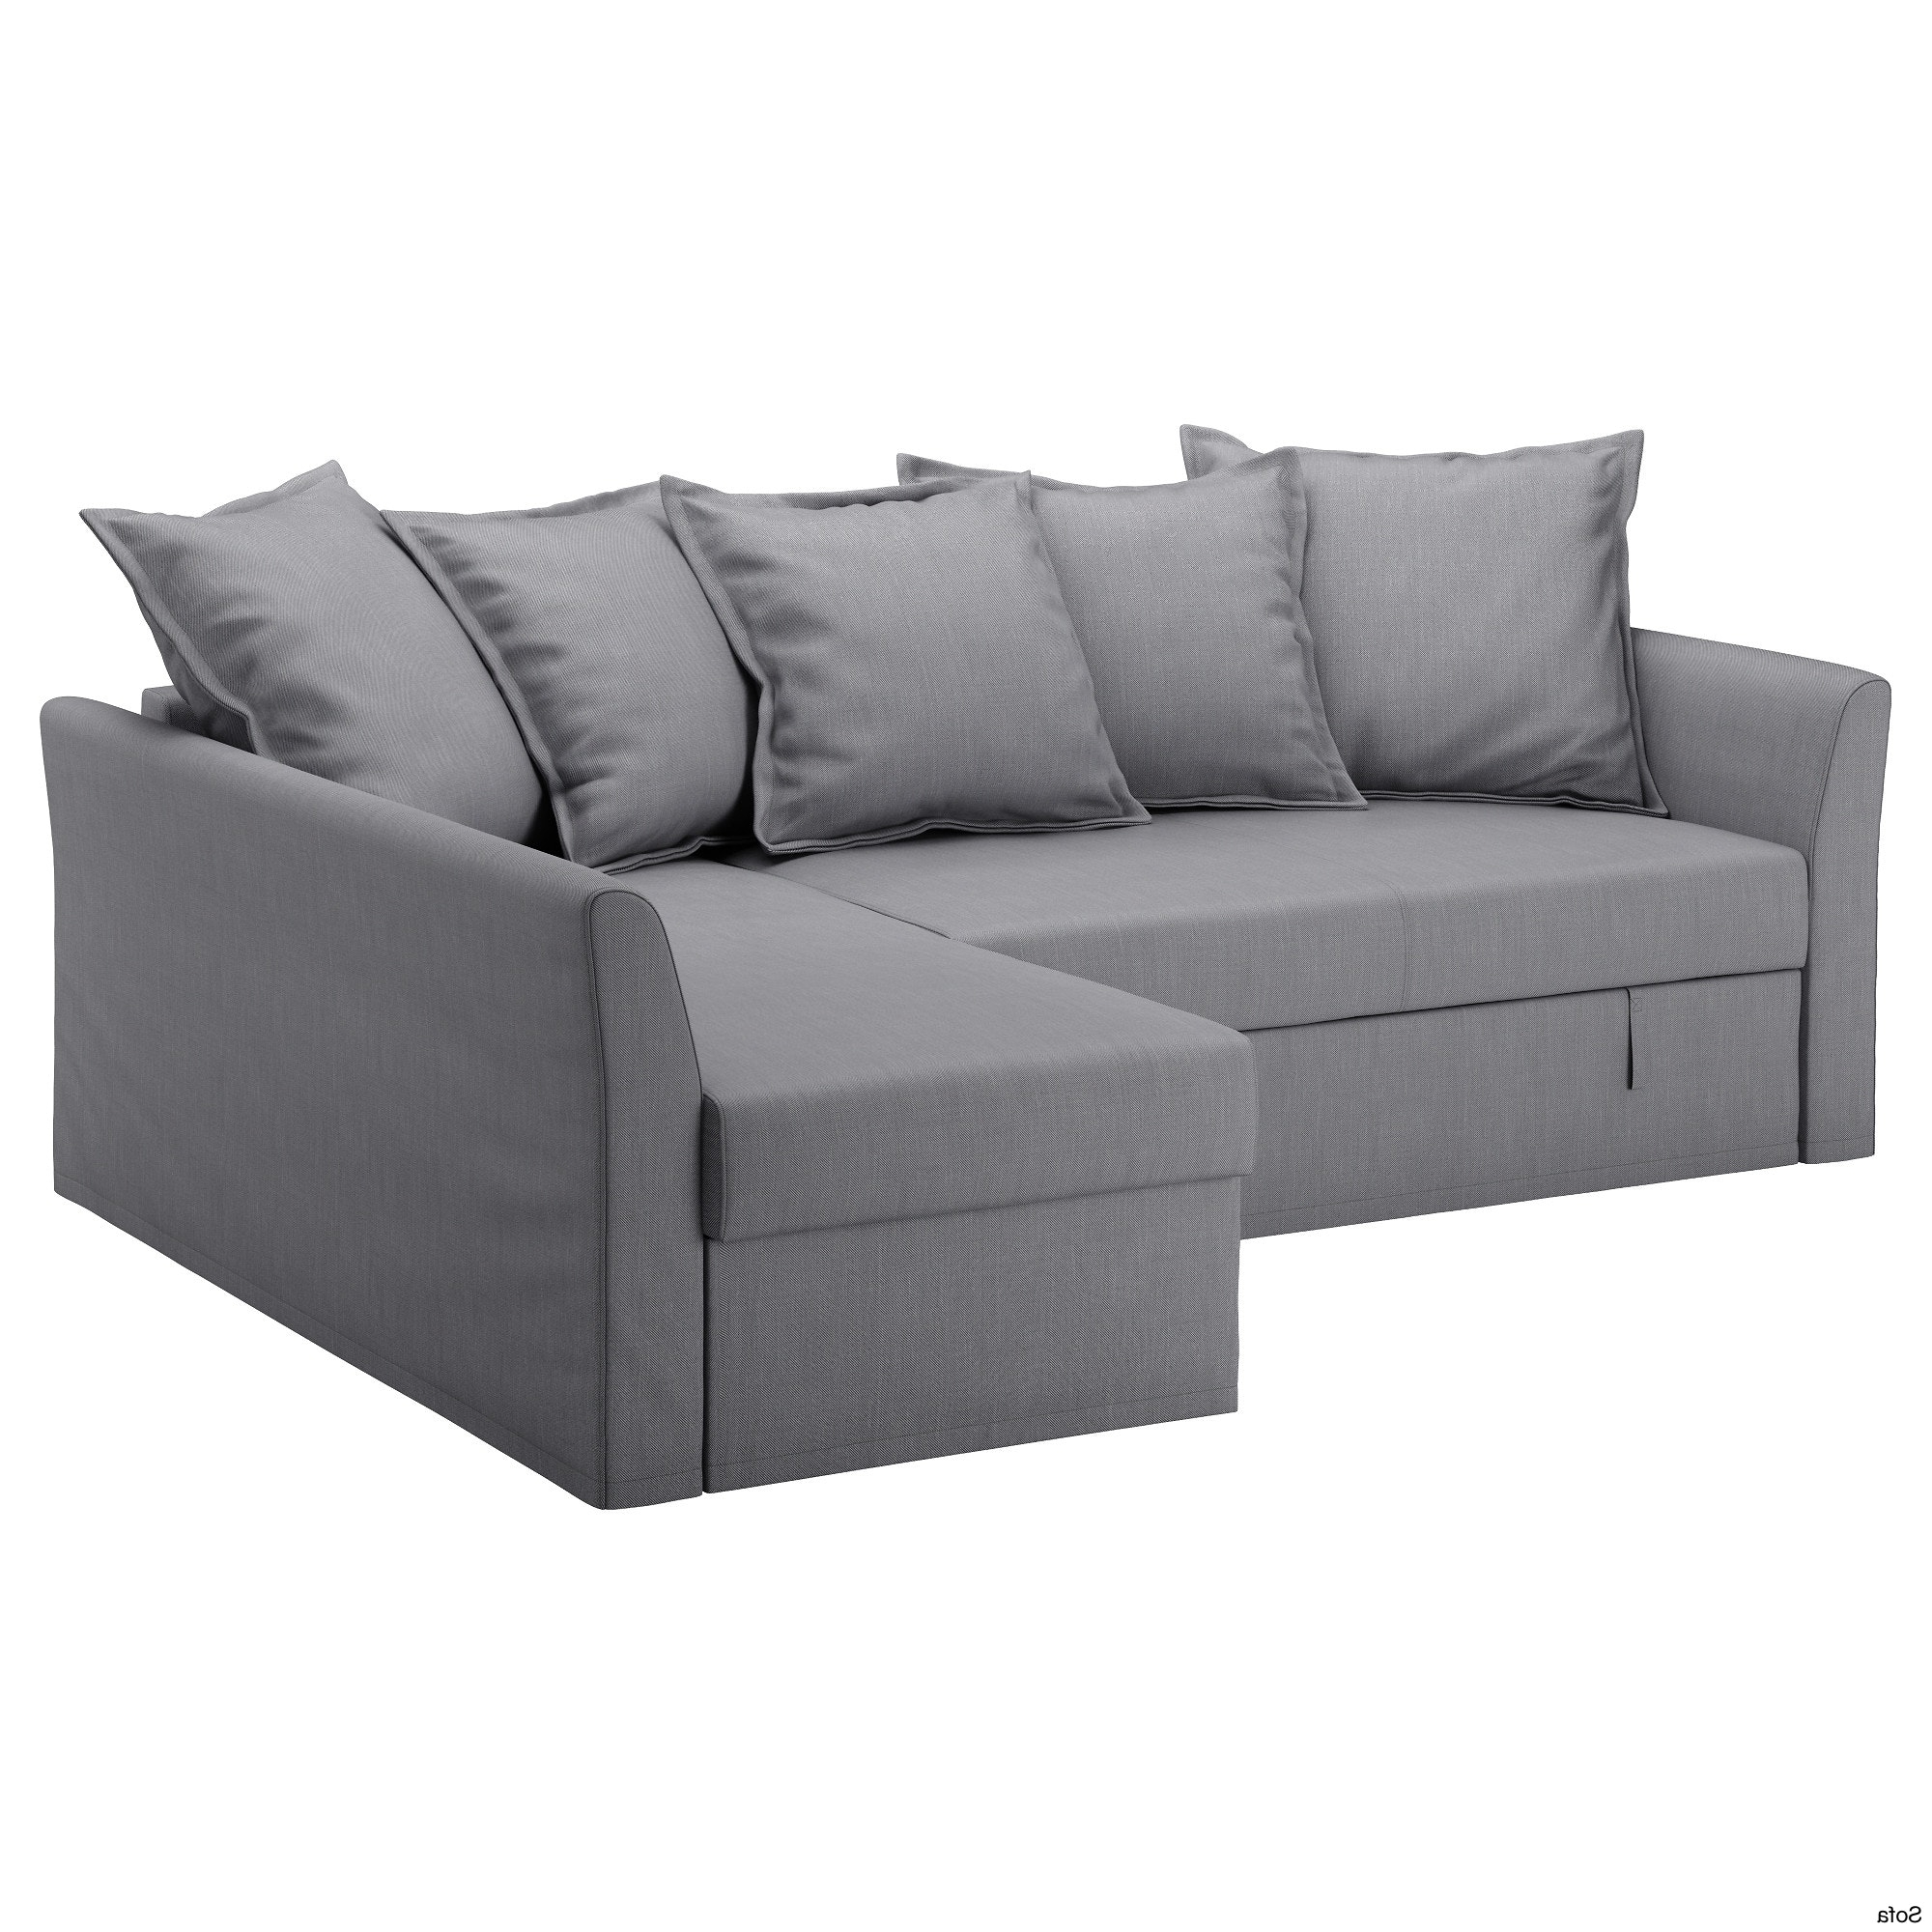 Ikea Sectional Sofa Beds With Recent Ikea Sectional Sofa Bed – Kaoaz (View 7 of 15)